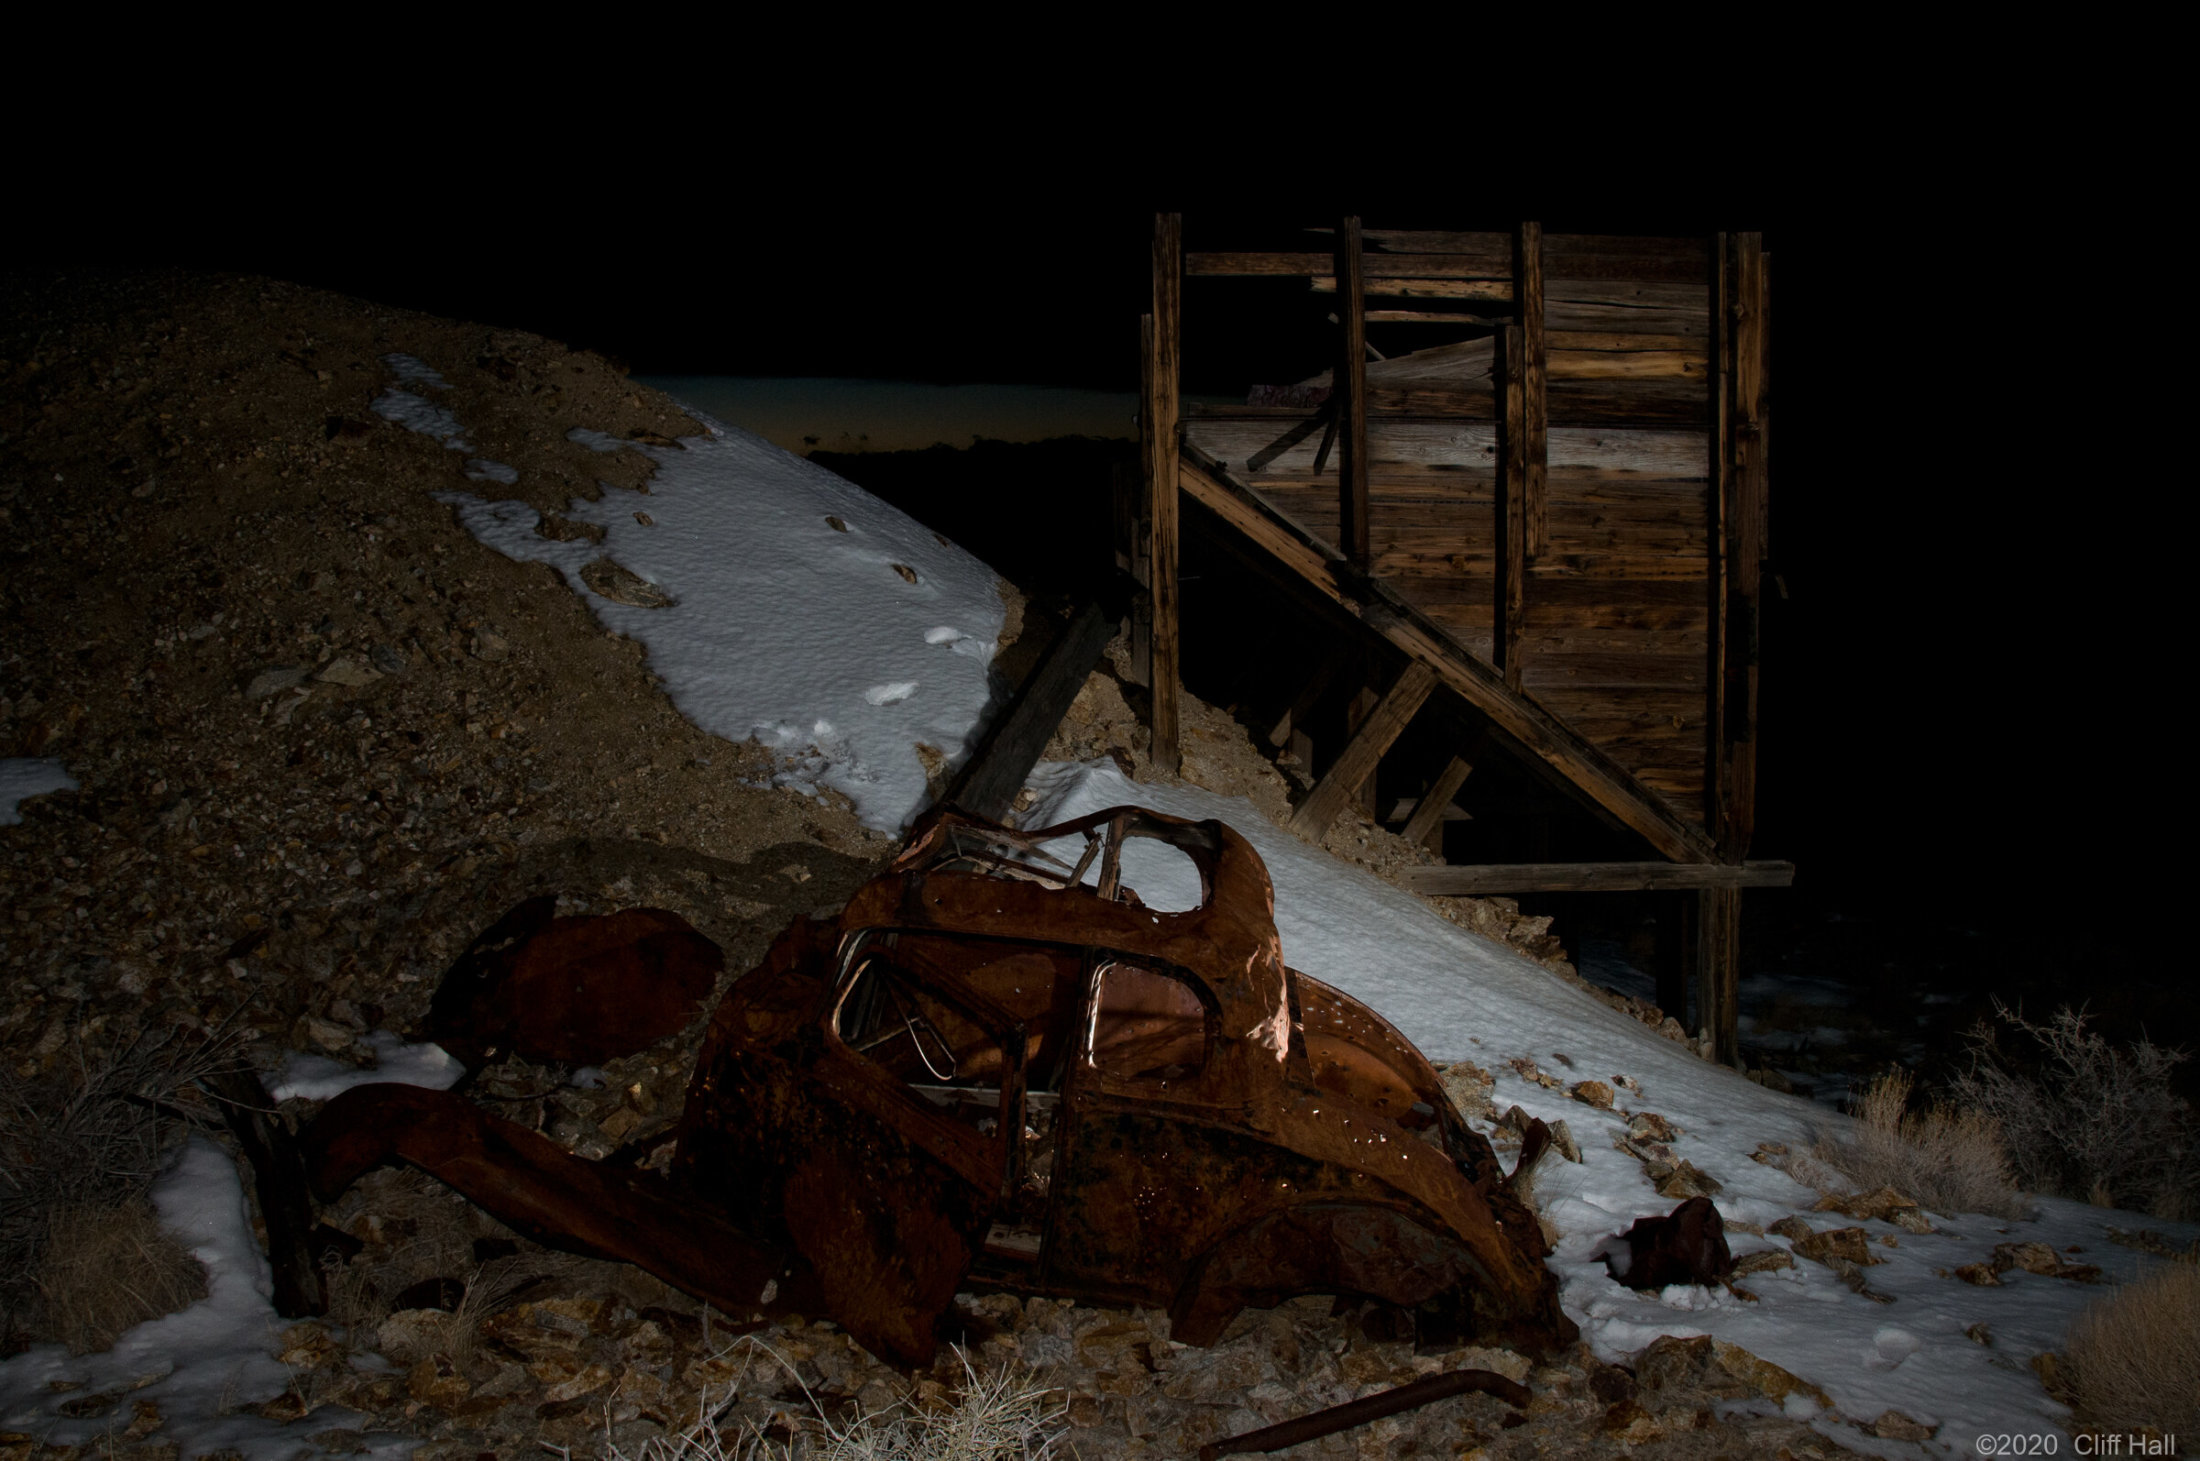 Night at the old gold mine